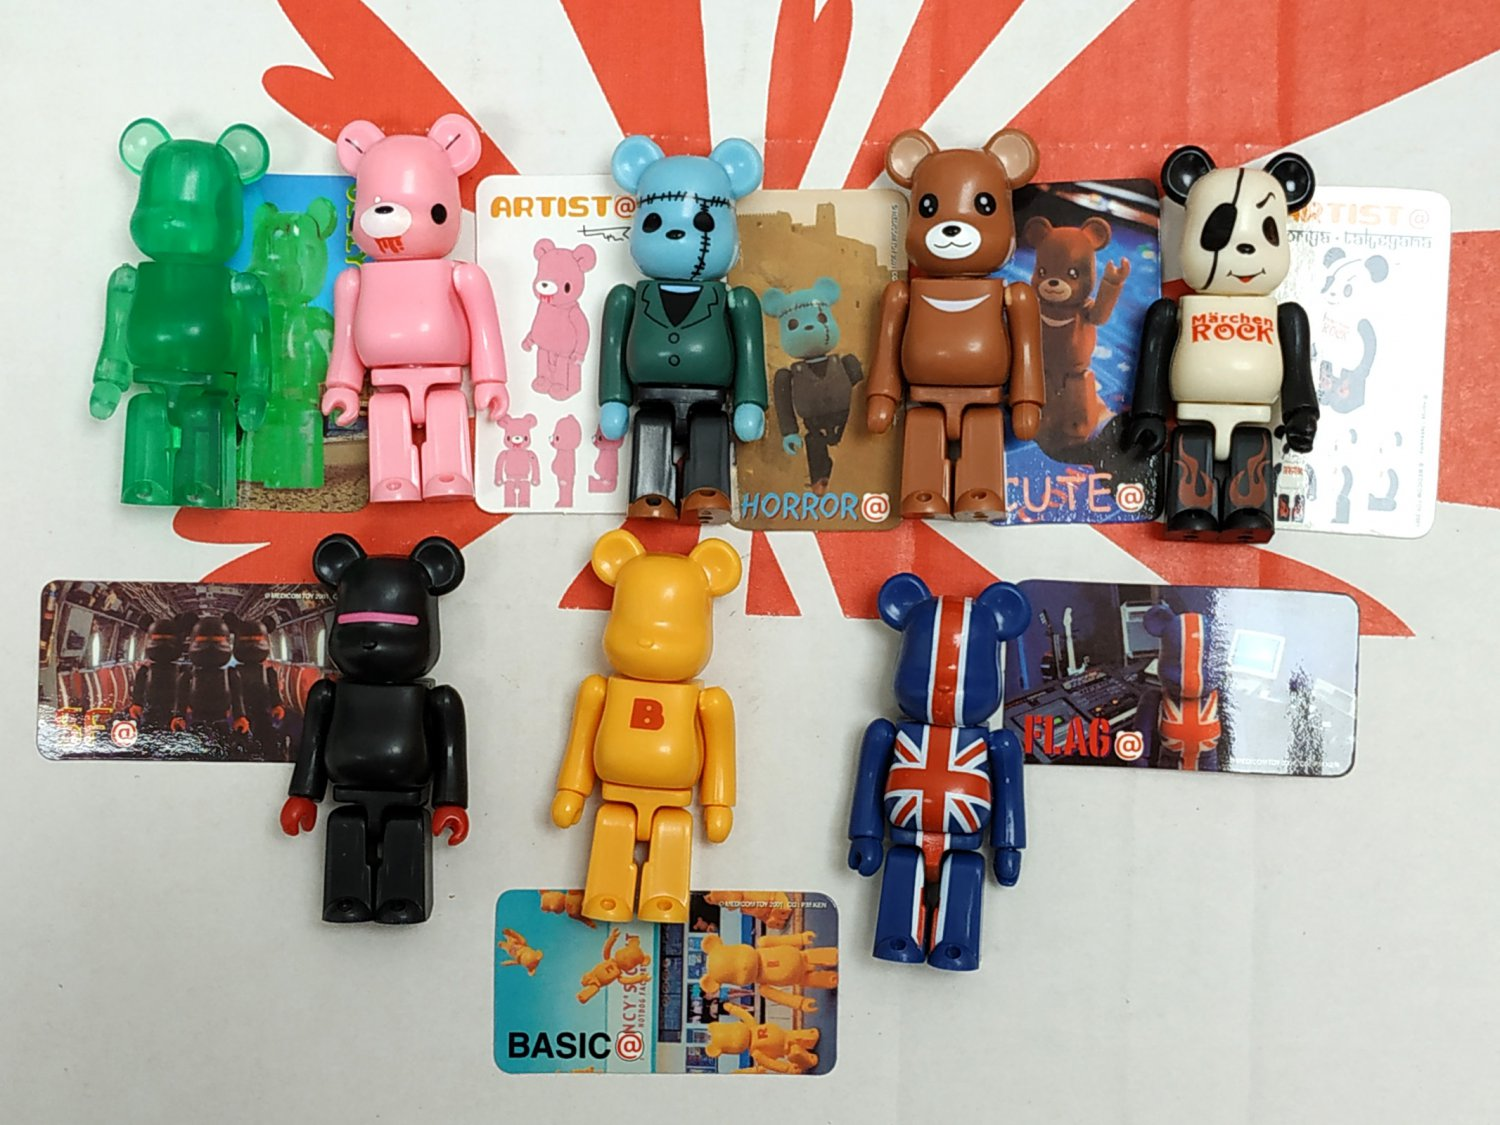 Medicom Toy 2001 Be@rbrick 100% Bearbrick Series 2 Action Figure S2 8 Pcs Set collectible